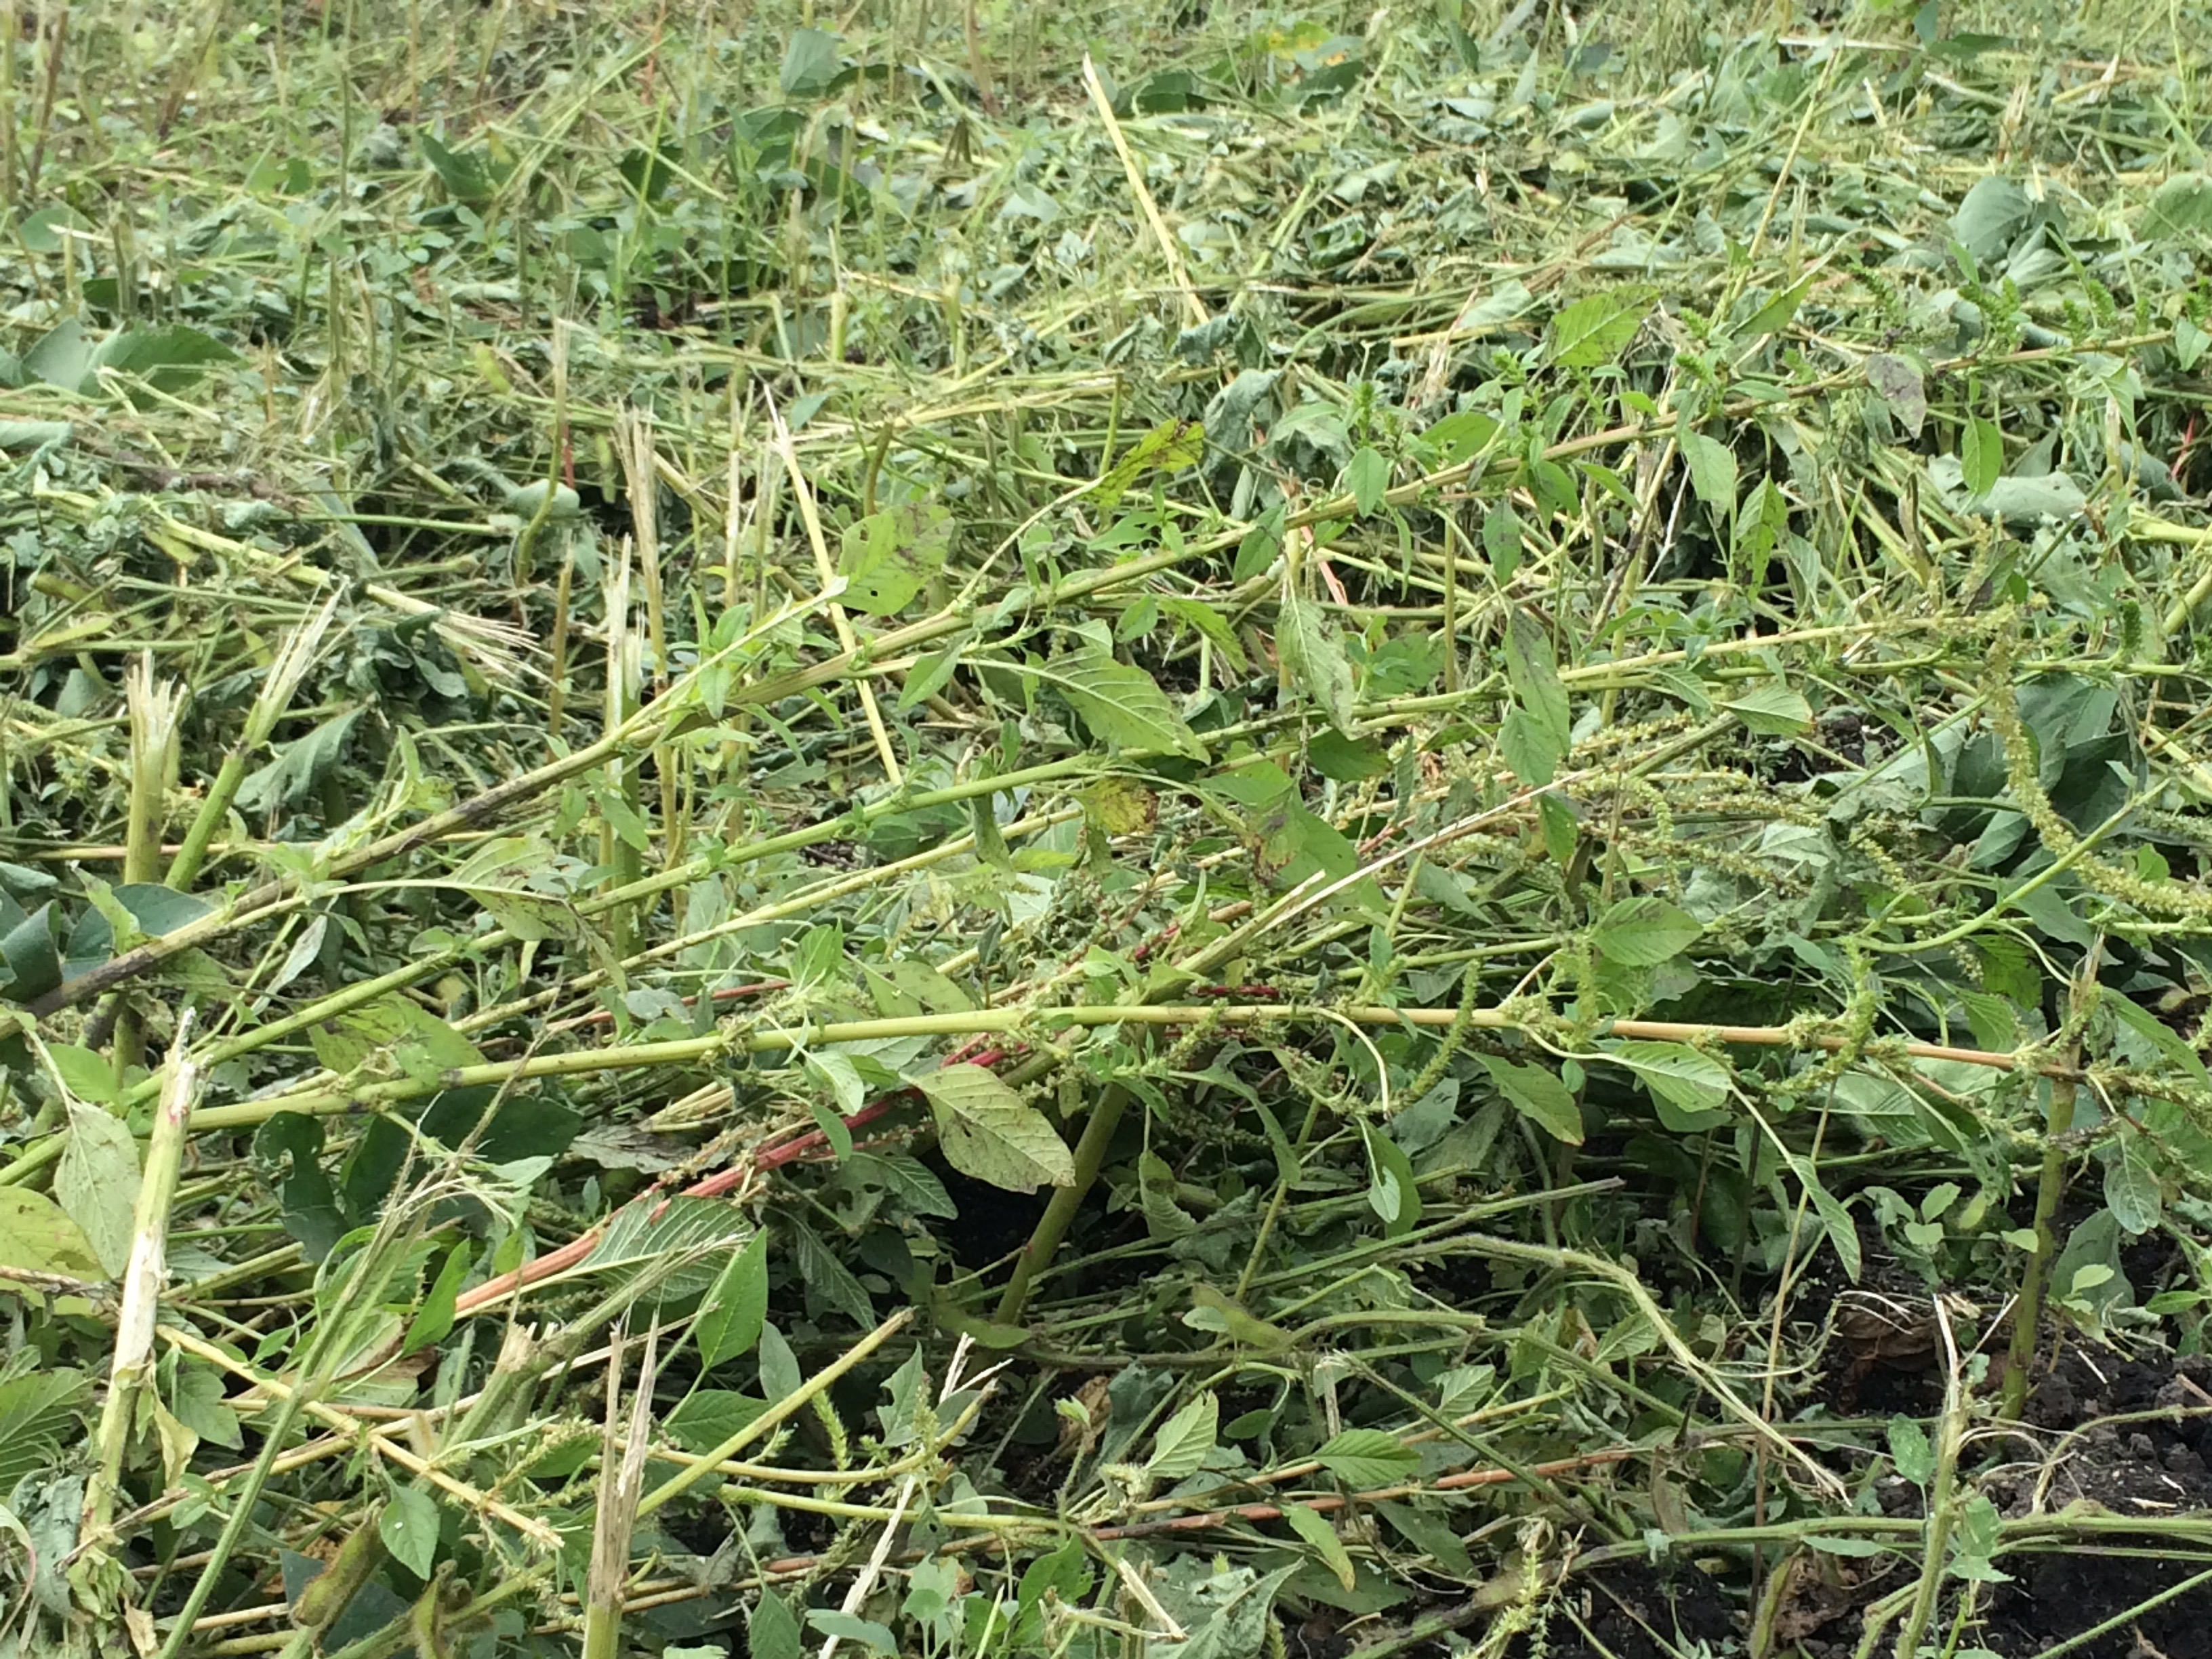 osu weed management information about weeds and herbicides for